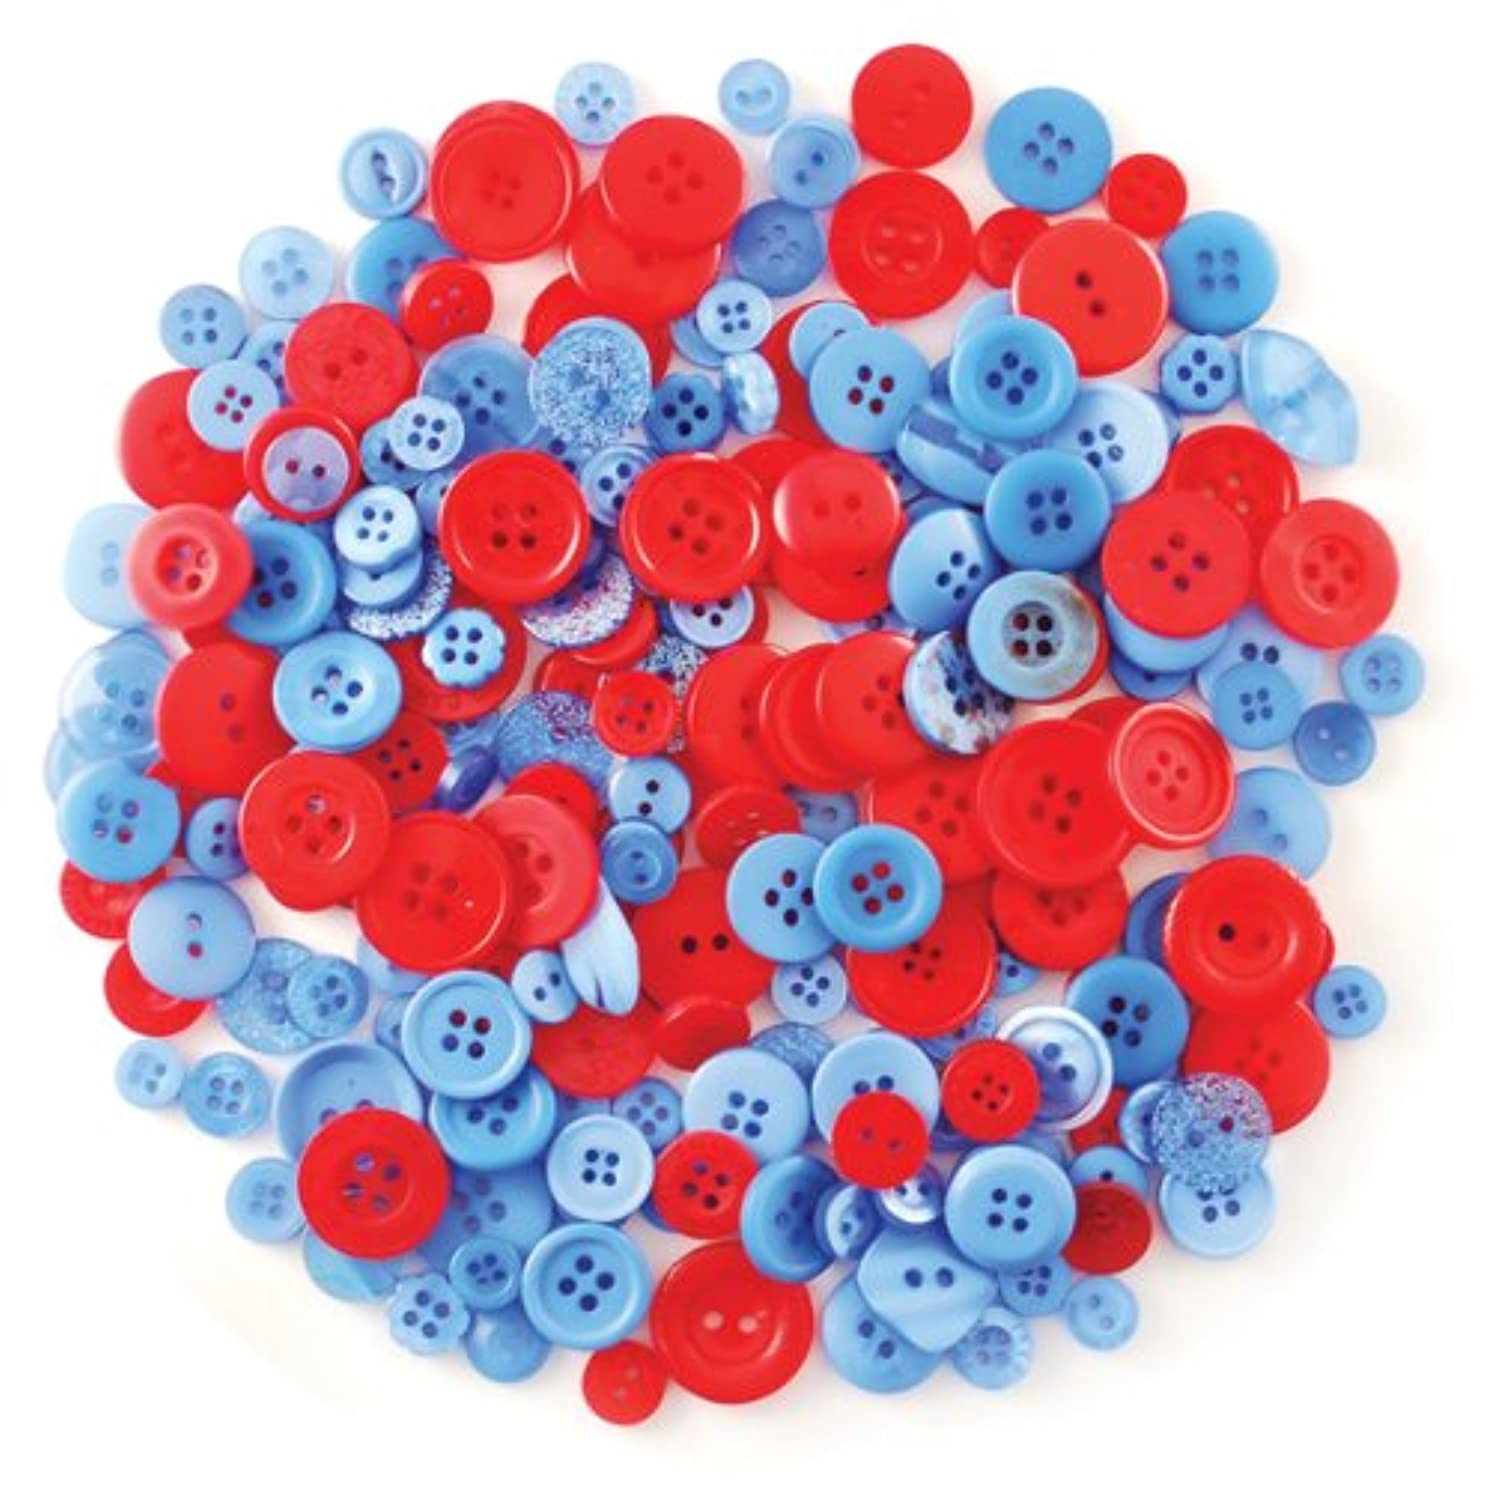 Multicraft Imports Fashion Buttons, 85gm, Bold